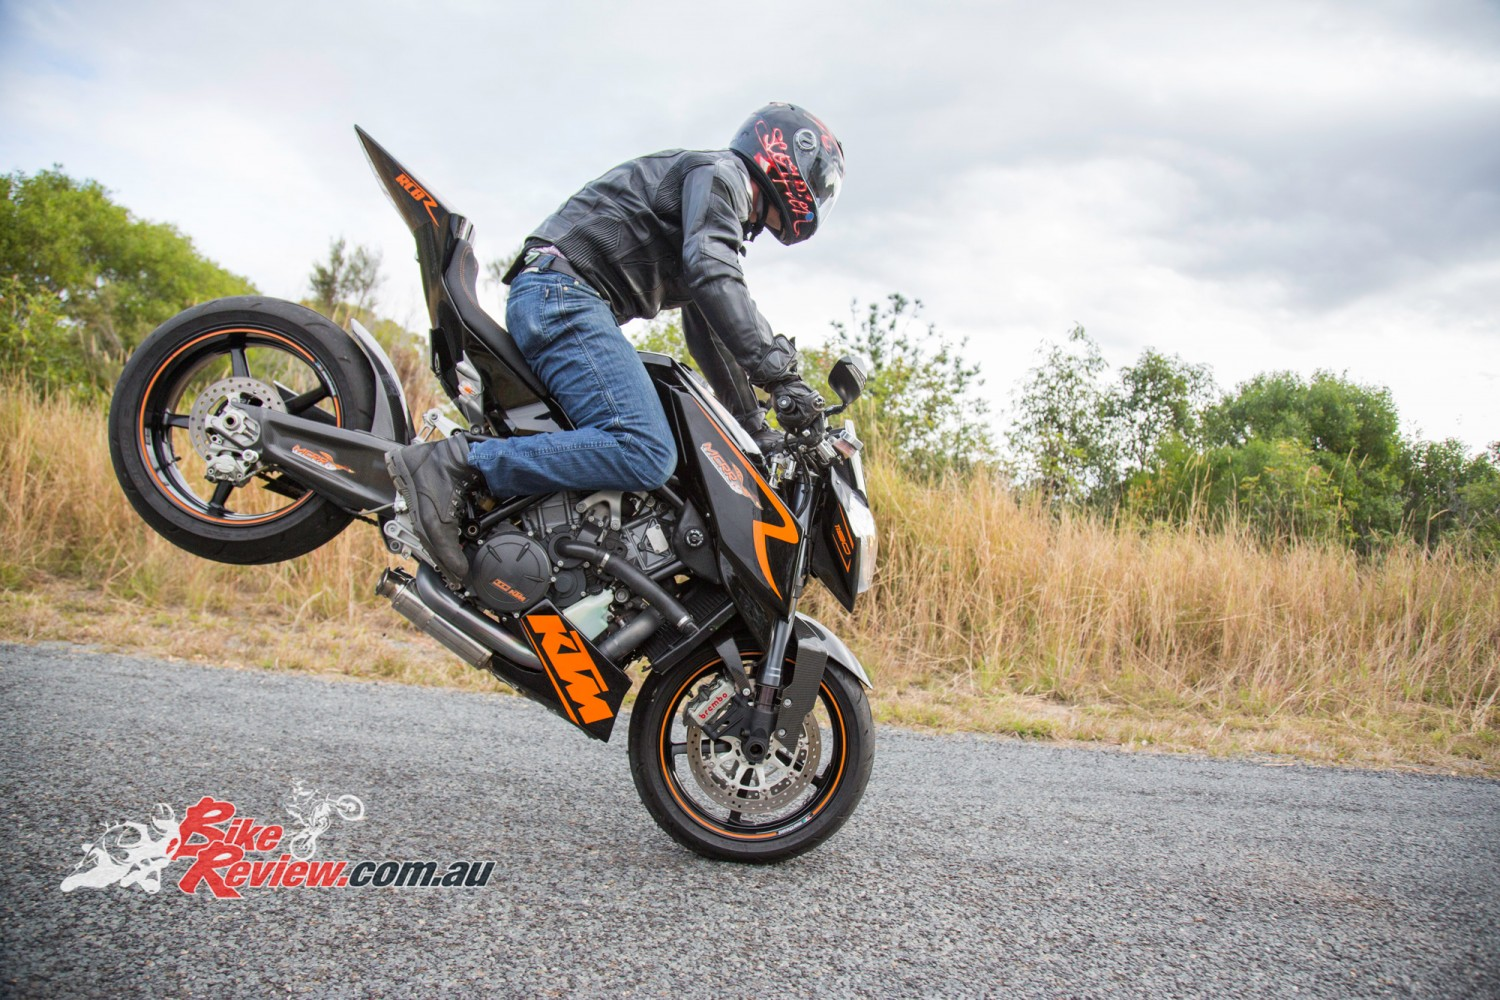 Ktm Rc Review